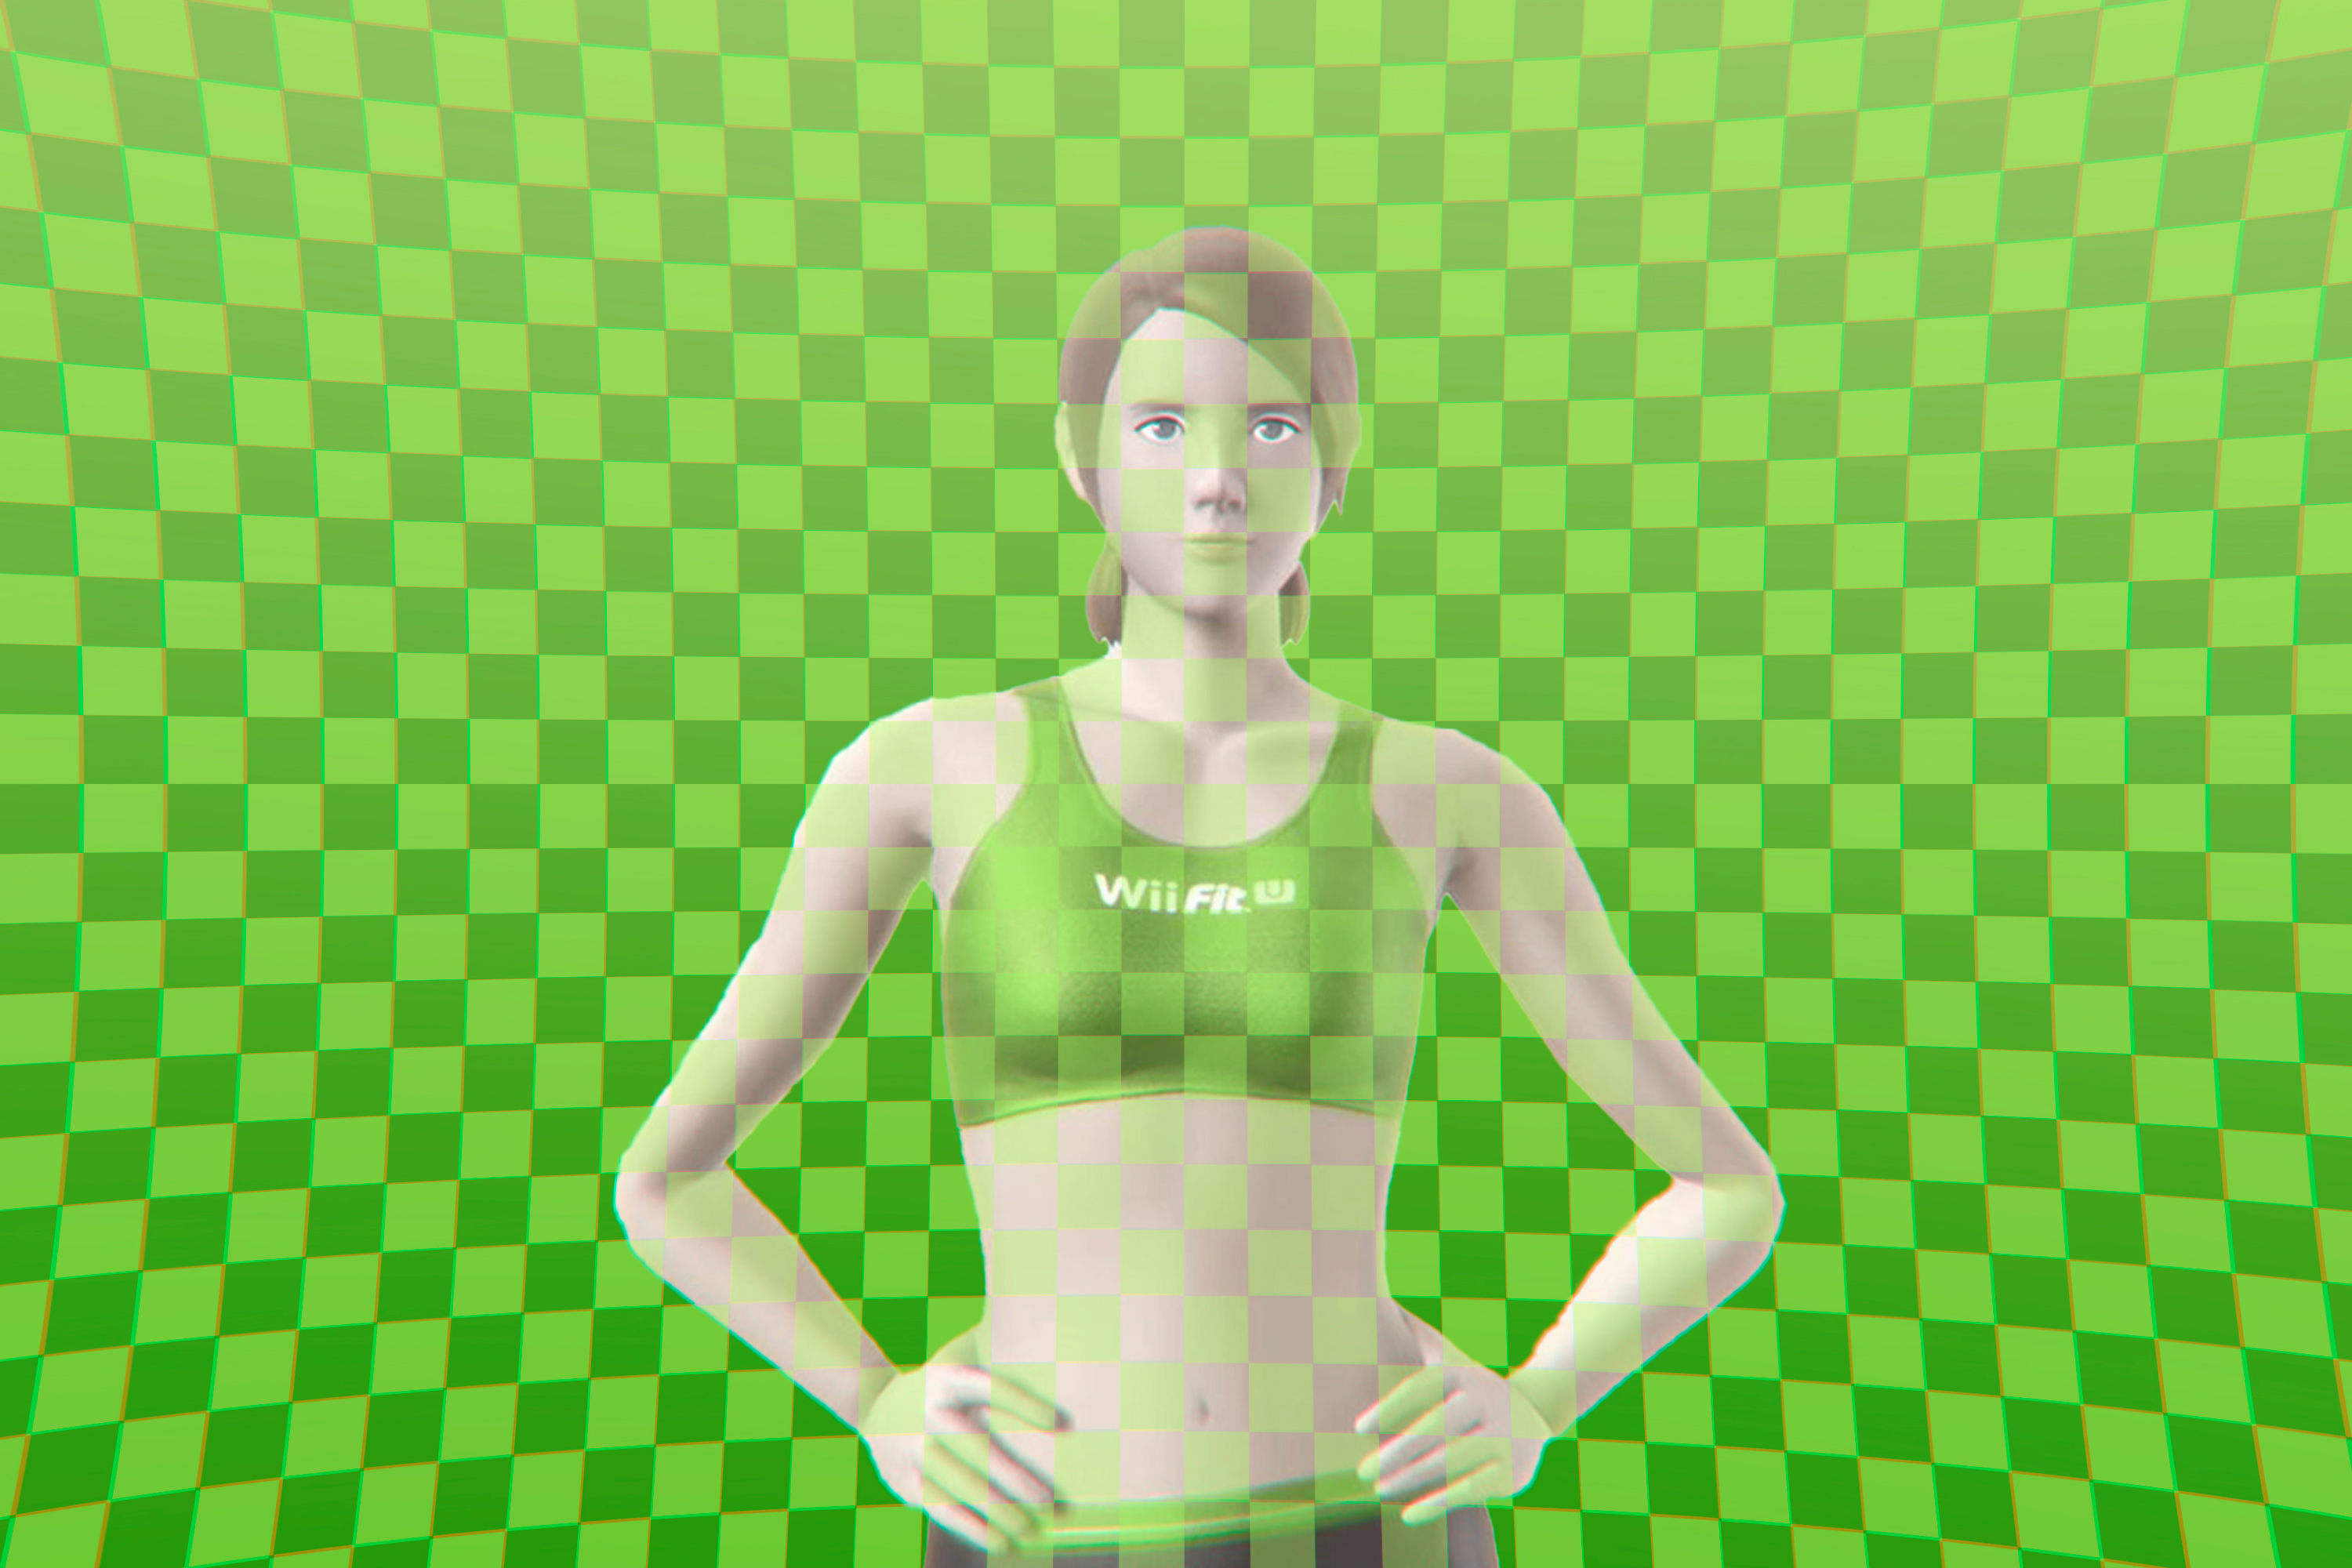 A female video game character wearing fitness clothing from Wii Fit stands against a green checkerboard patterned background